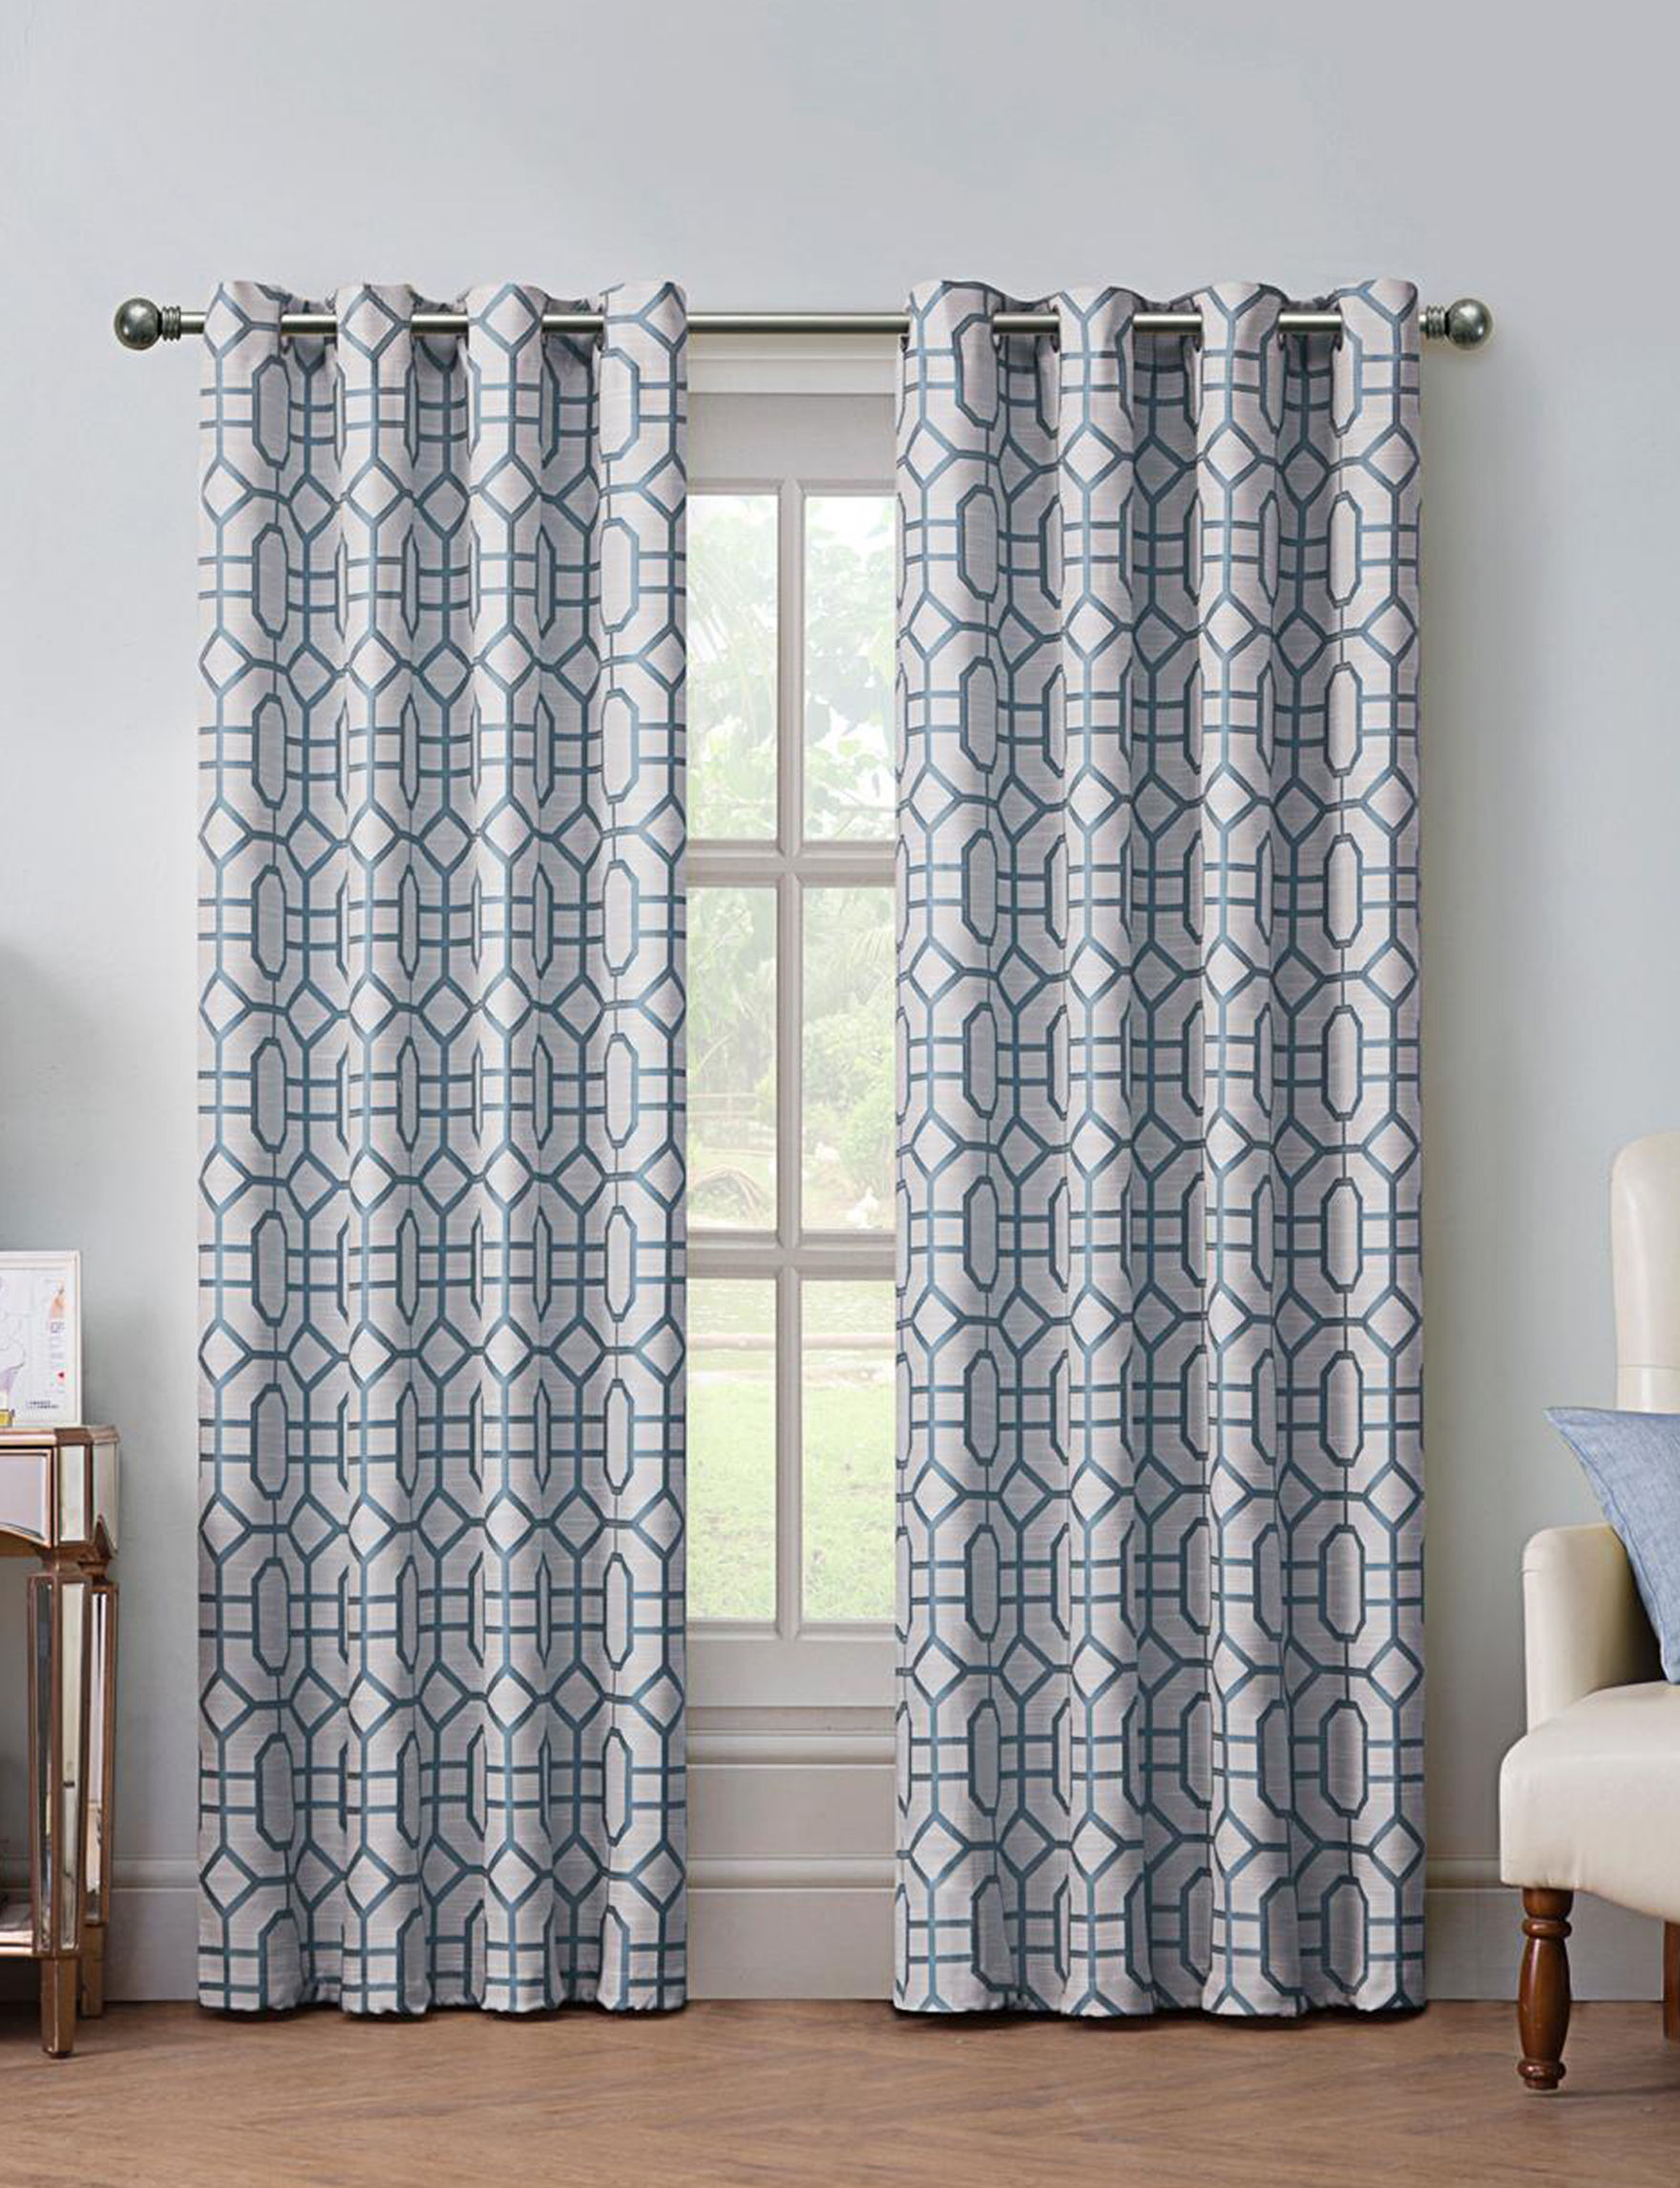 VCNY Home Blue Curtains & Drapes Window Treatments